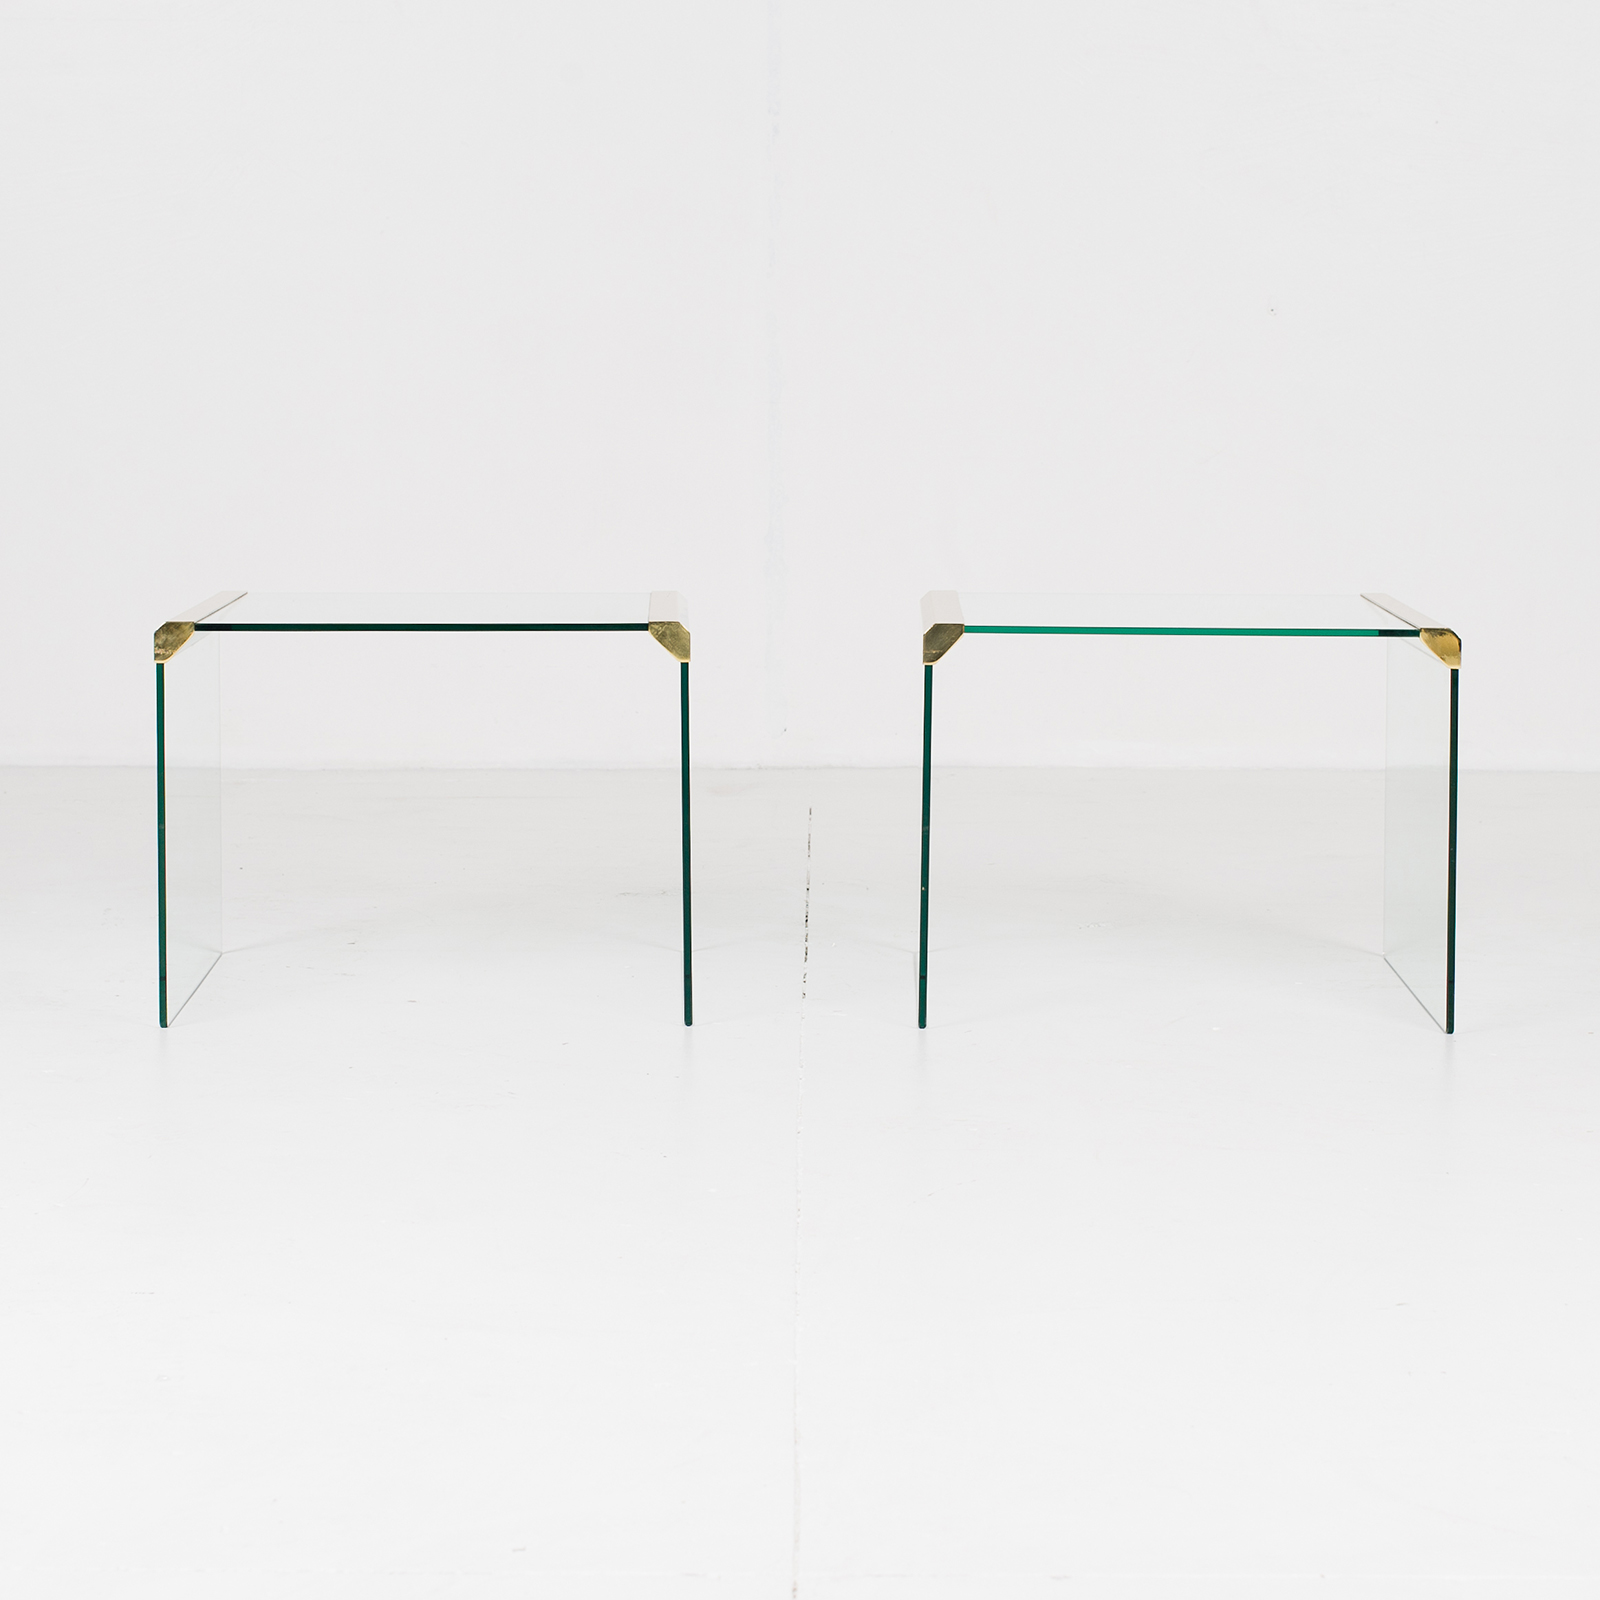 Waterfall Side Table By Pace In Glass And Anodised Brass, 1970s, United States10